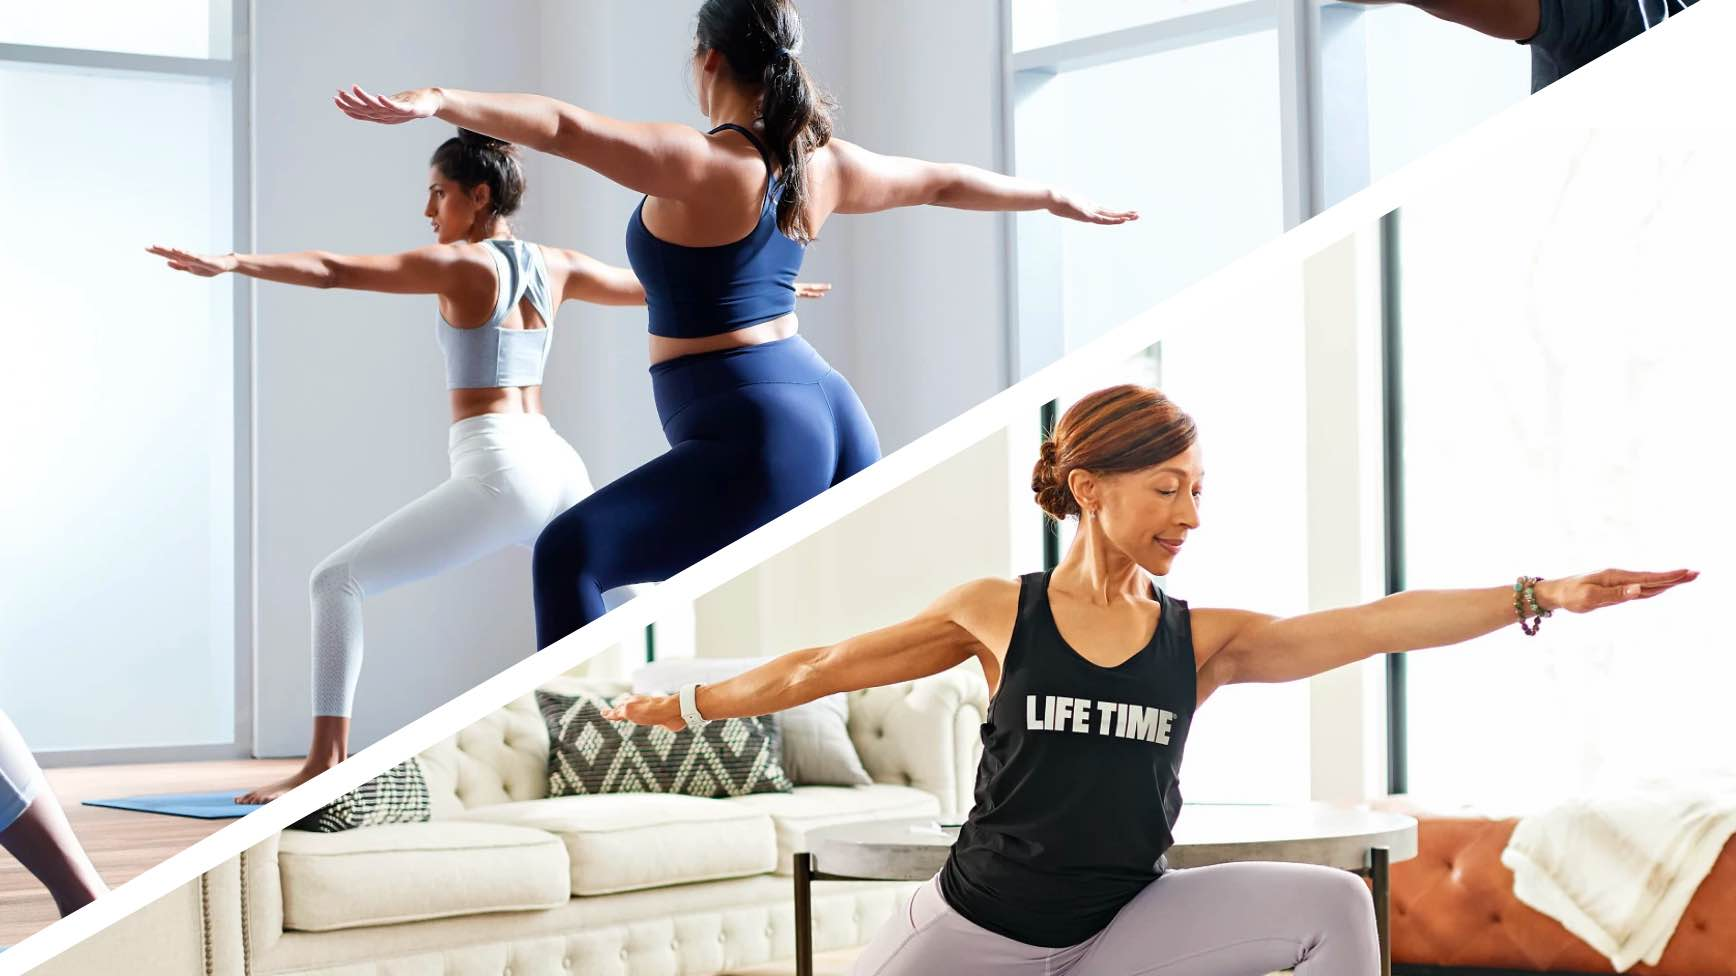 Split image of women doing yoga in a studio and a woman taking an on demand class at home with Life Time